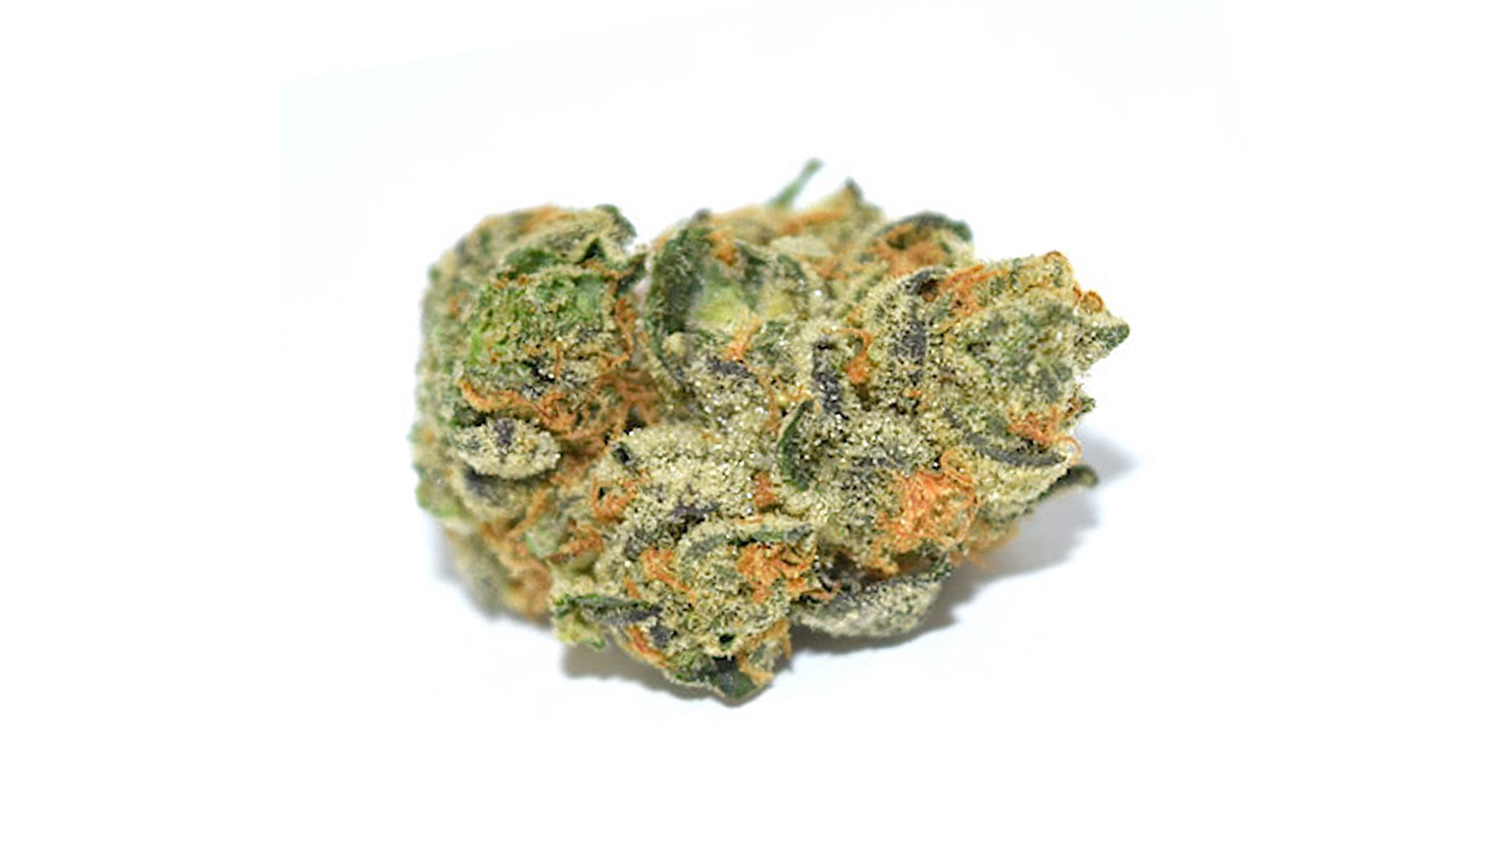 WestCanna's Forum Cut GSC is The Planter's Guide inaugural weed of the week.